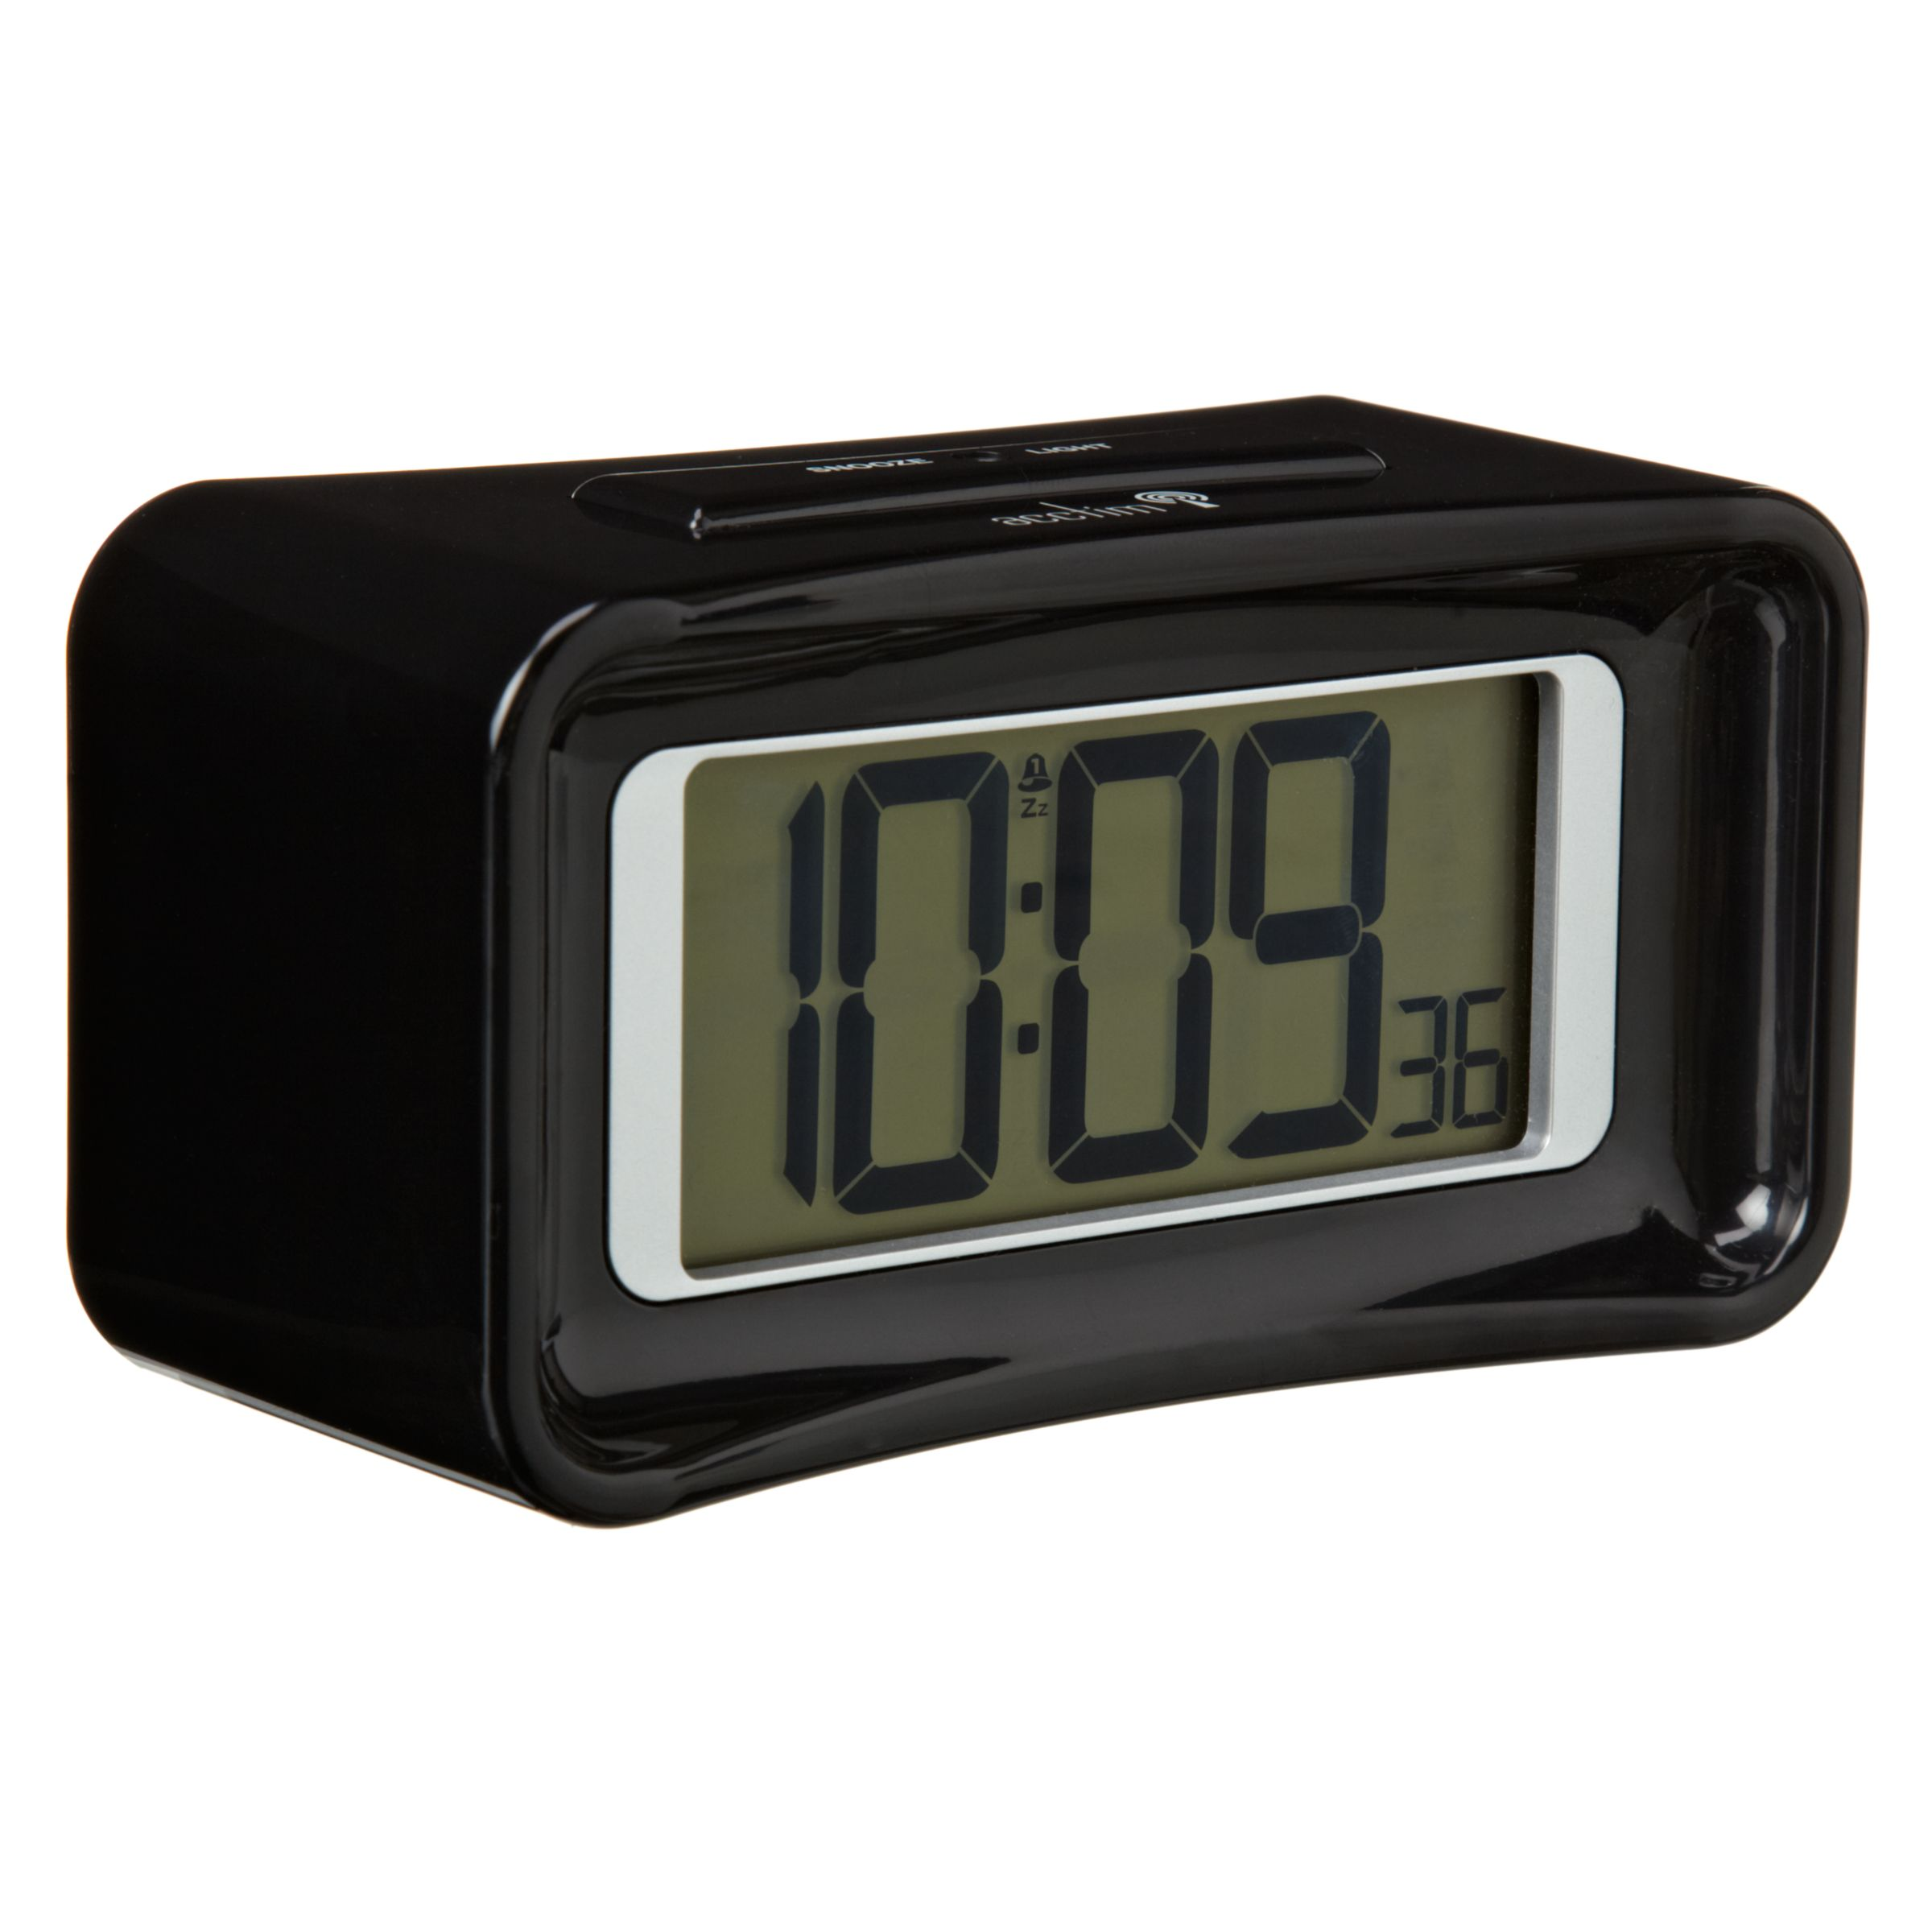 Acctim Guardia Radio Controlled Alarm Clock